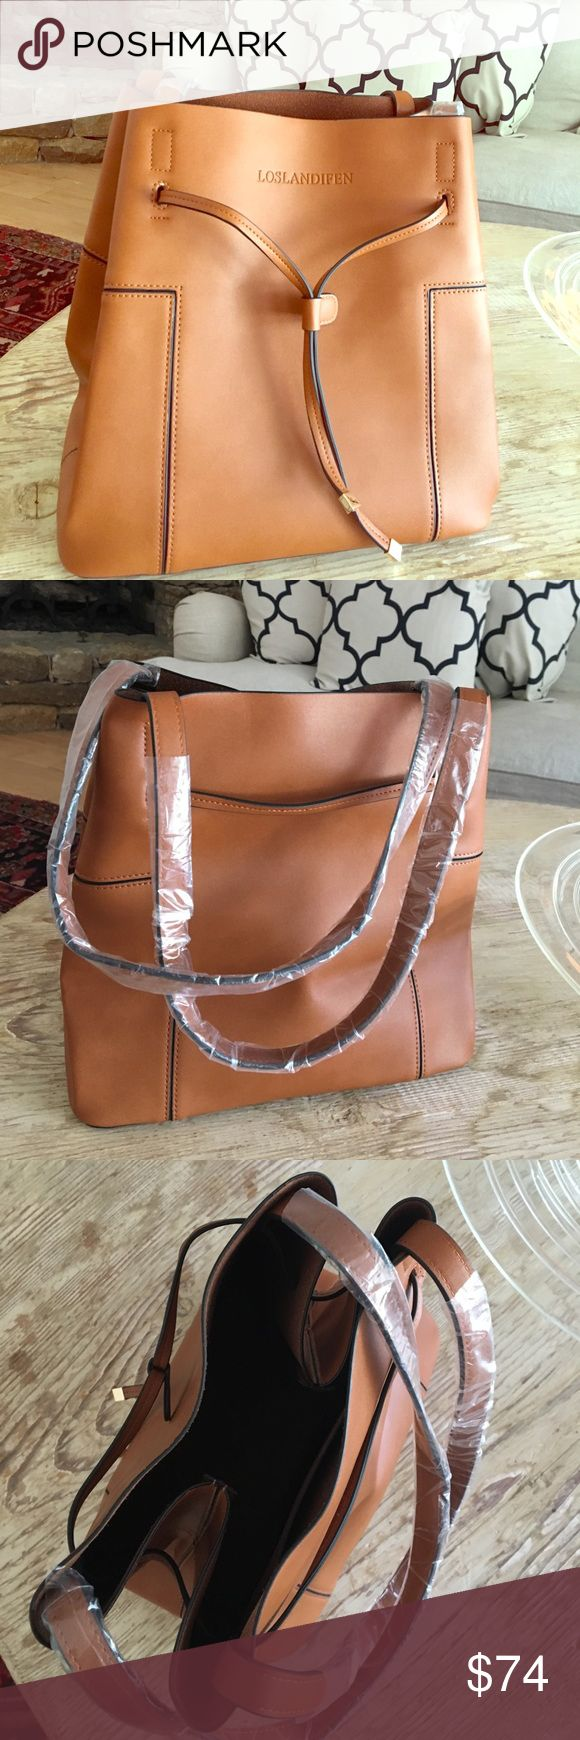 """New Tote 👜 Medium Shoulder bag beautiful Saddle Brand new Tote or shoulder (hand) bag in gorgeous faux ( great fake) leather. Tan, brown, really saddle color. And gold hardware. Comes with dust cover. 10.5"""" wide, 11"""" tall x 7"""" deep. Ships 🚢 immediately from top seller in all categories. loslandifen Bags Shoulder Bags"""